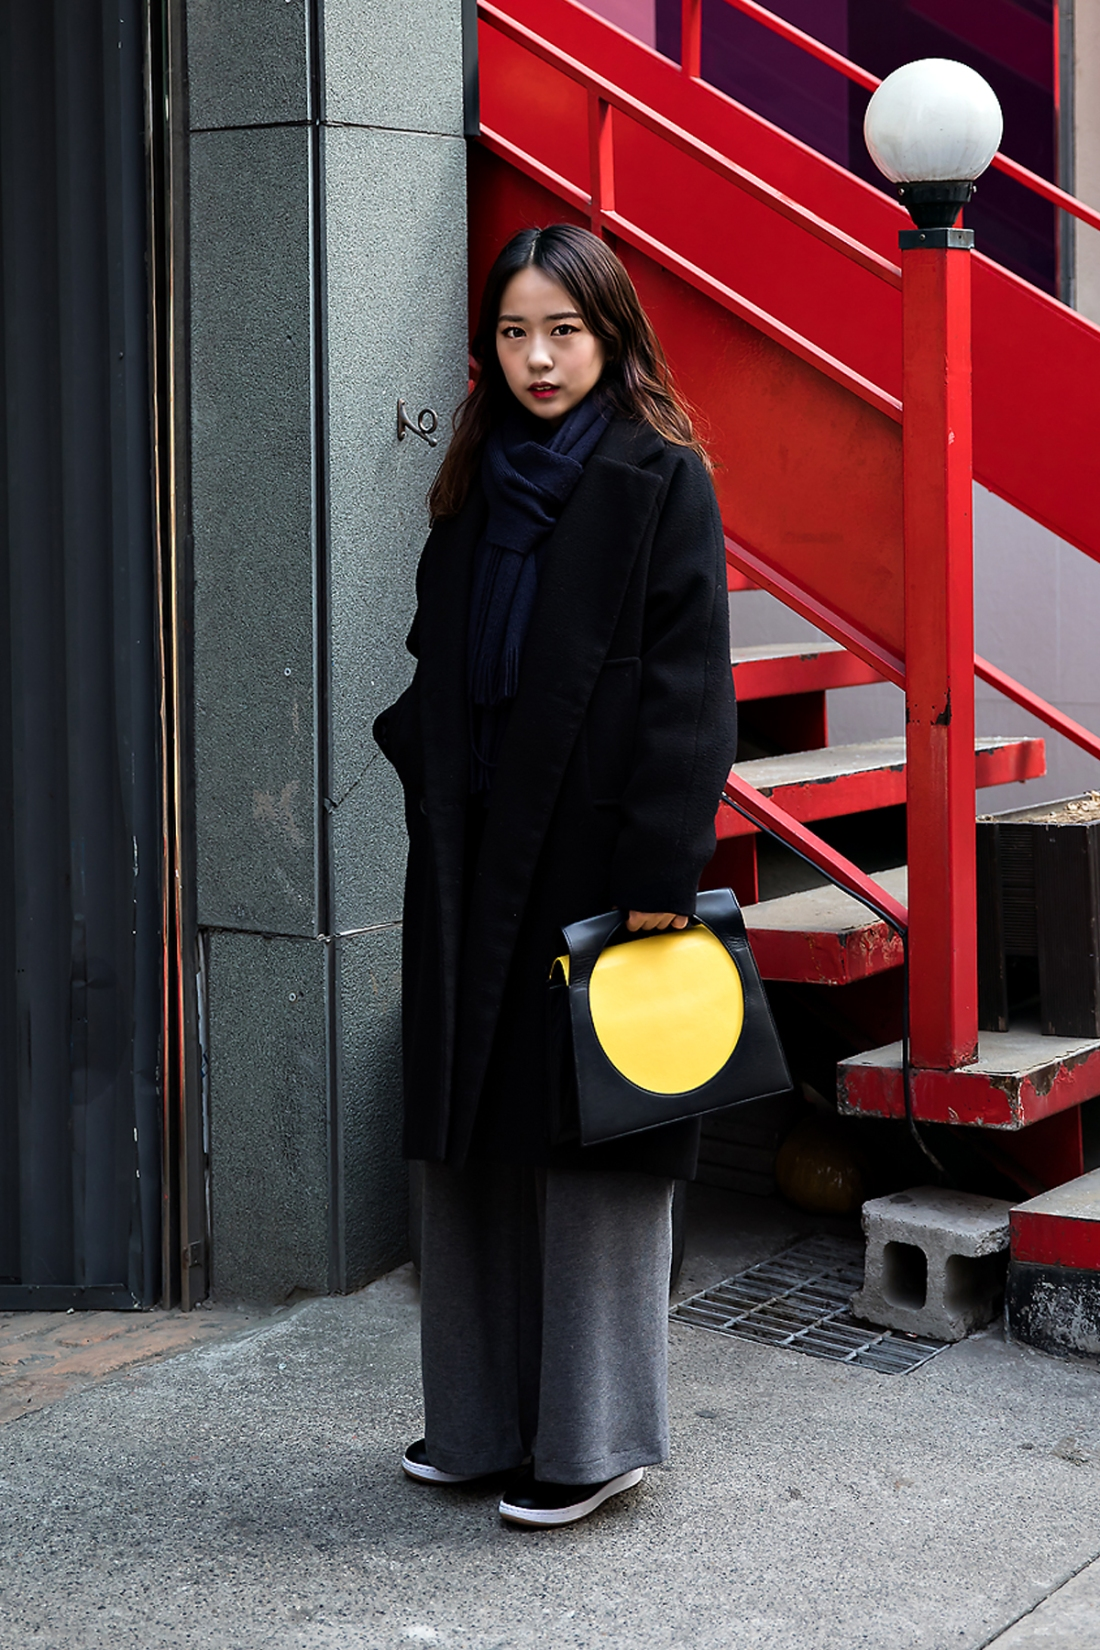 Hong Soojin, Street Fashion 2017 in SEOUL.jpg